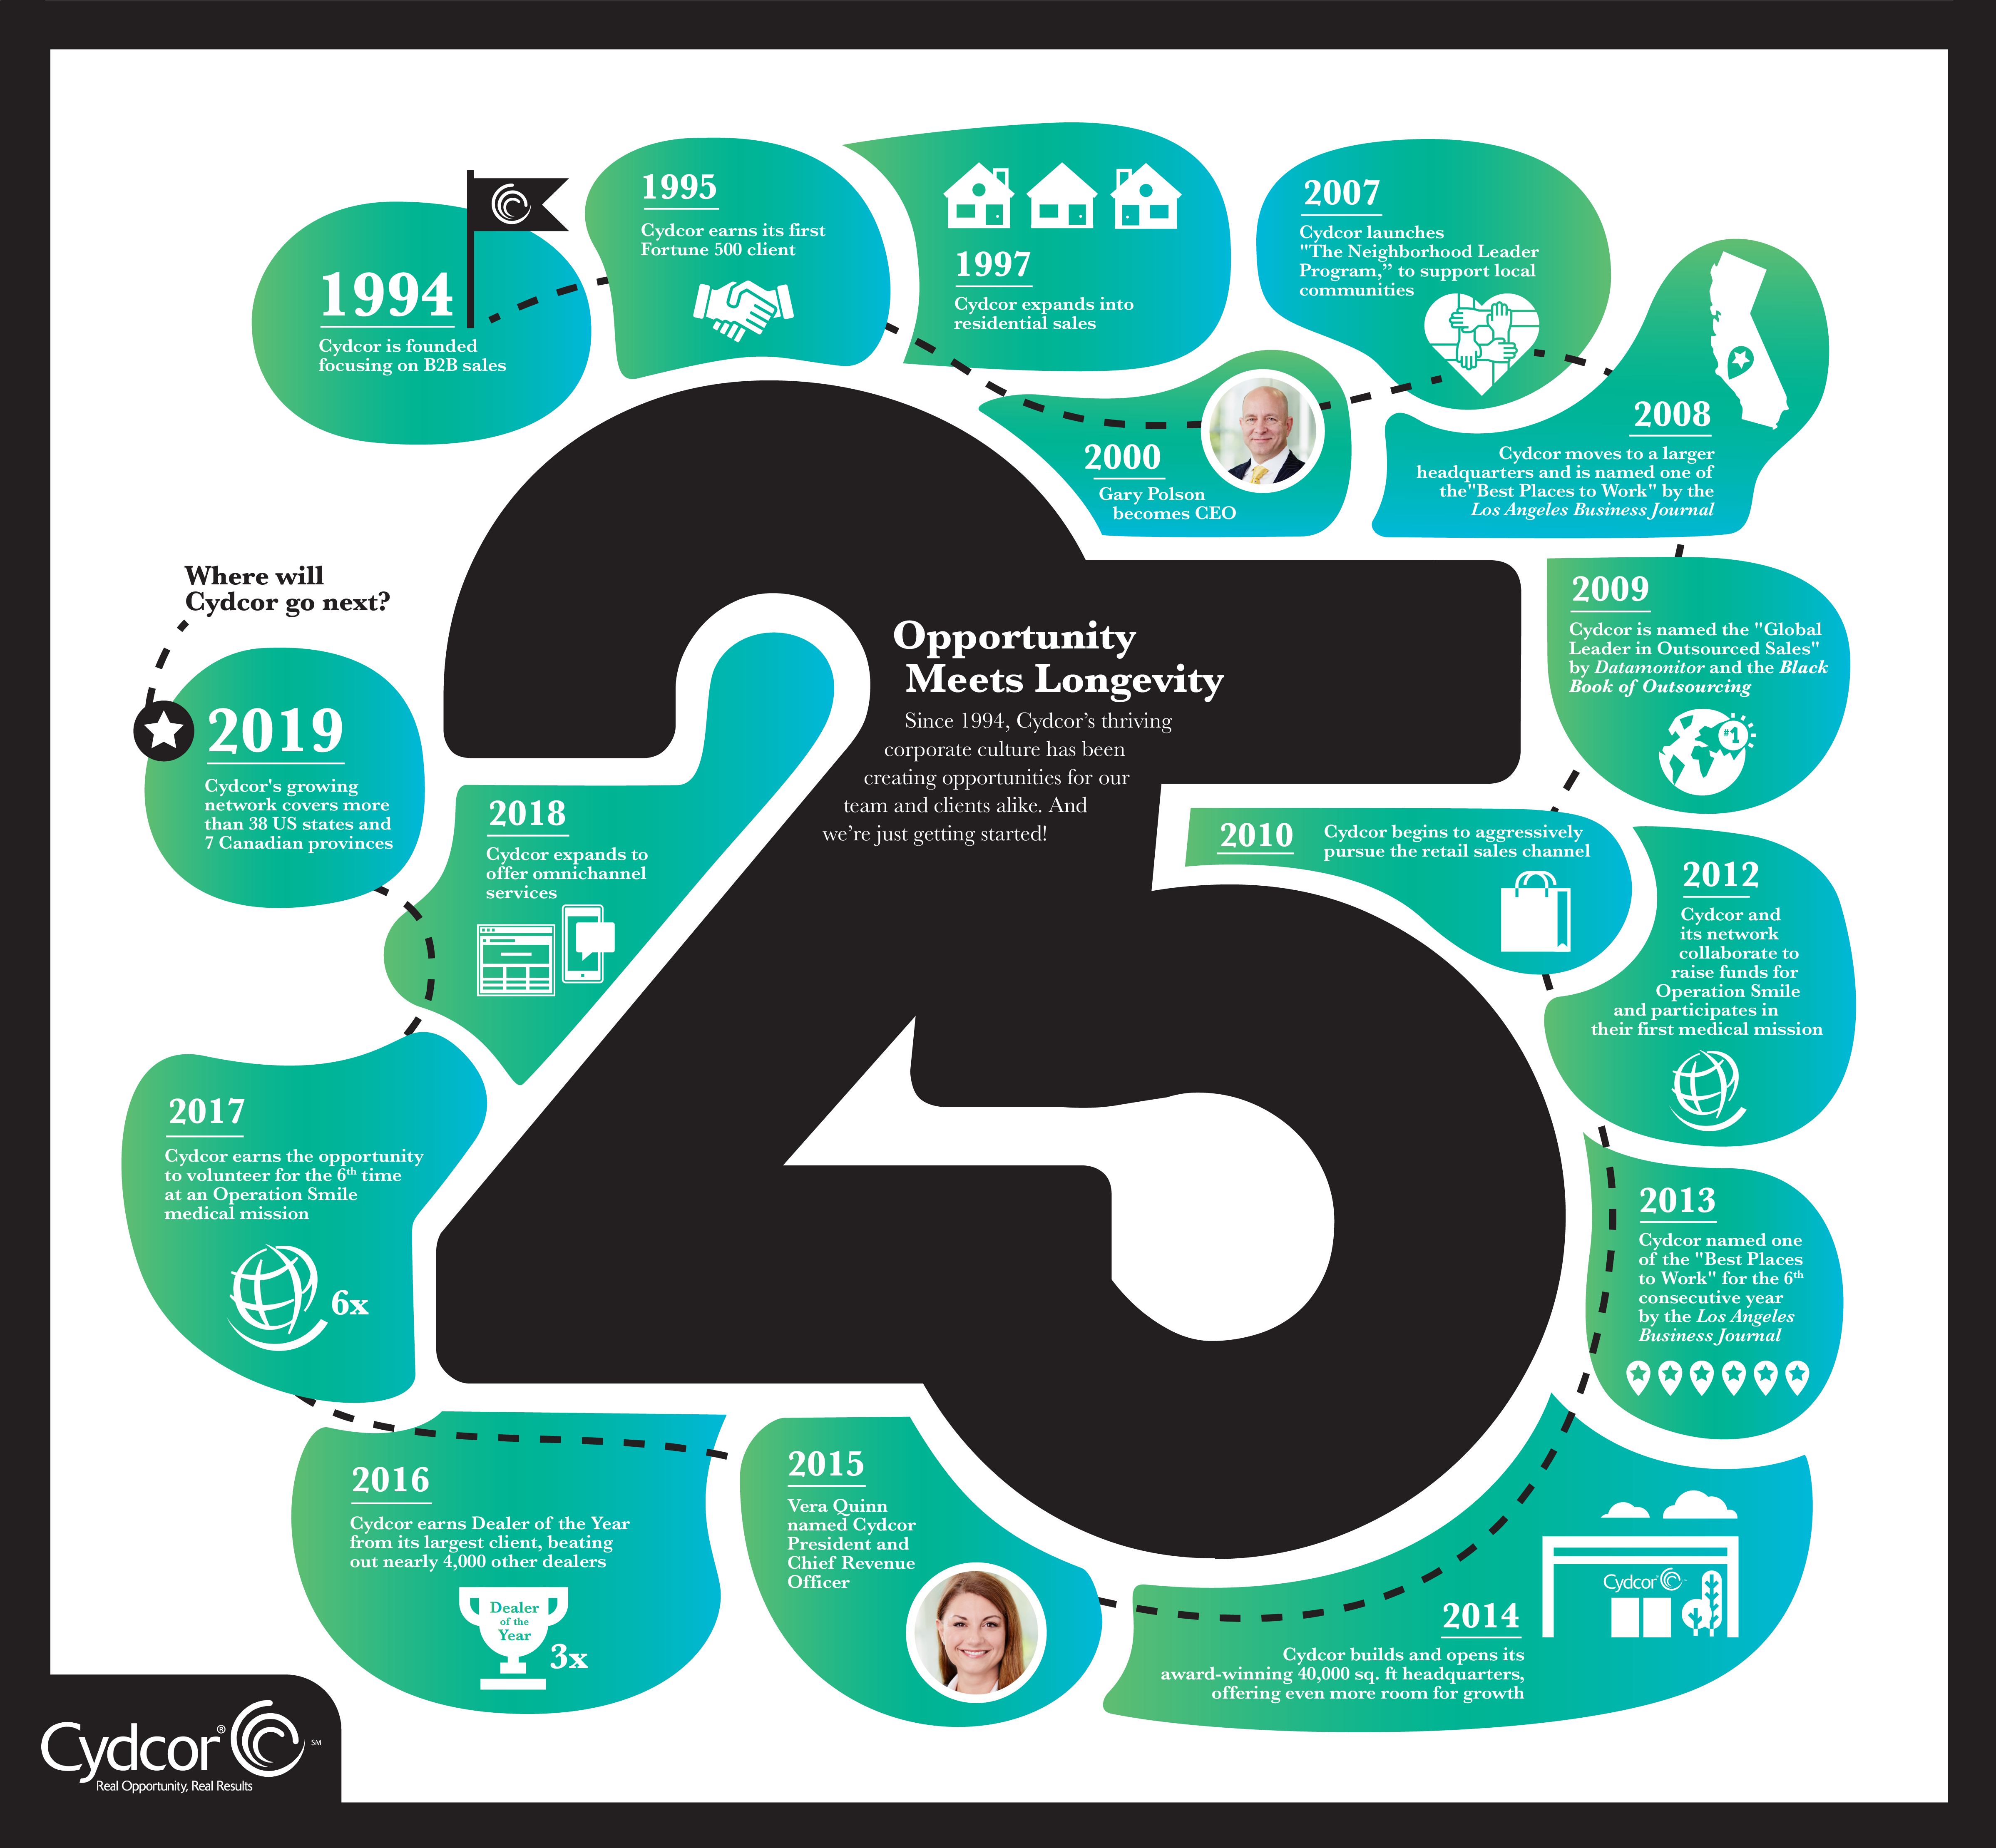 Infographic tracing Cydcor's 25 year history of success.